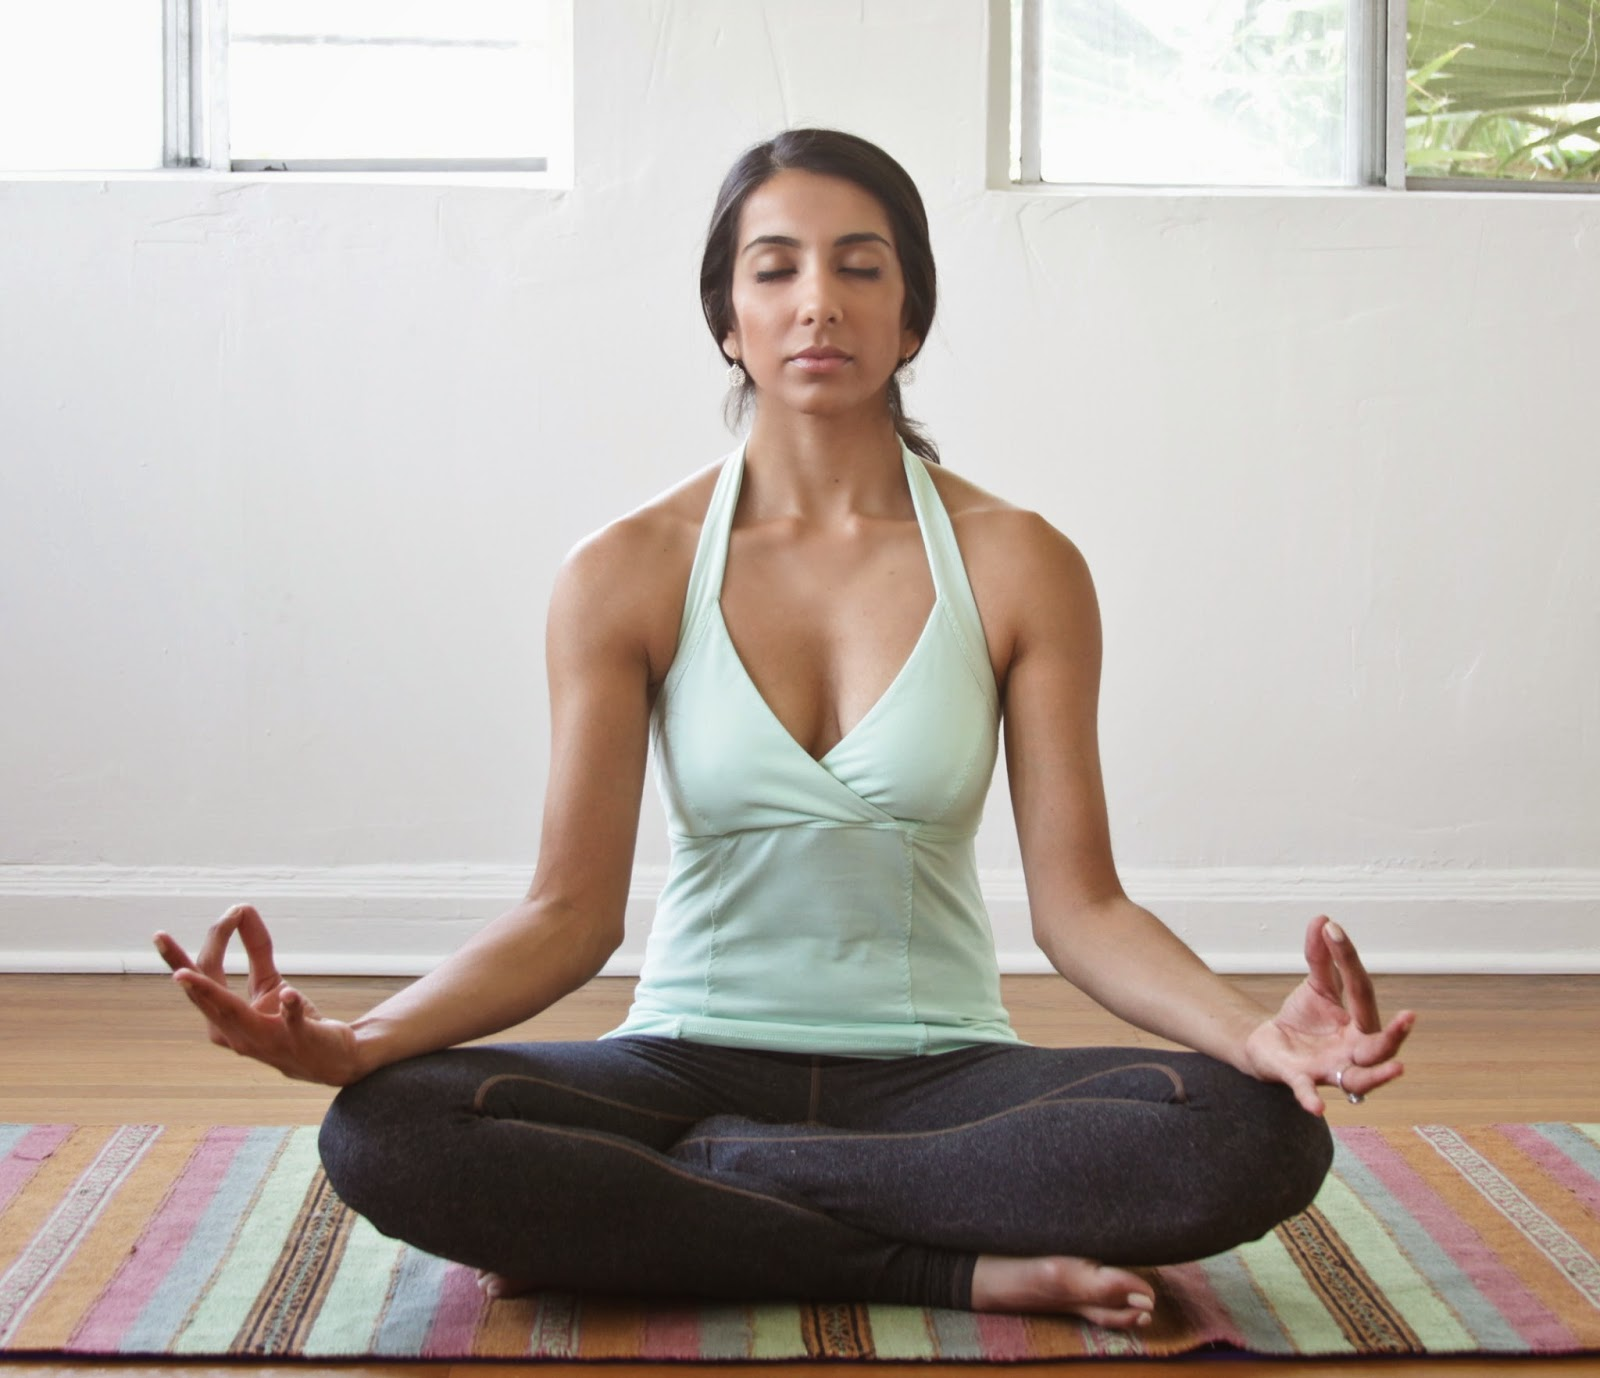 Home yoga from scratch: 16 poses for beginners 42